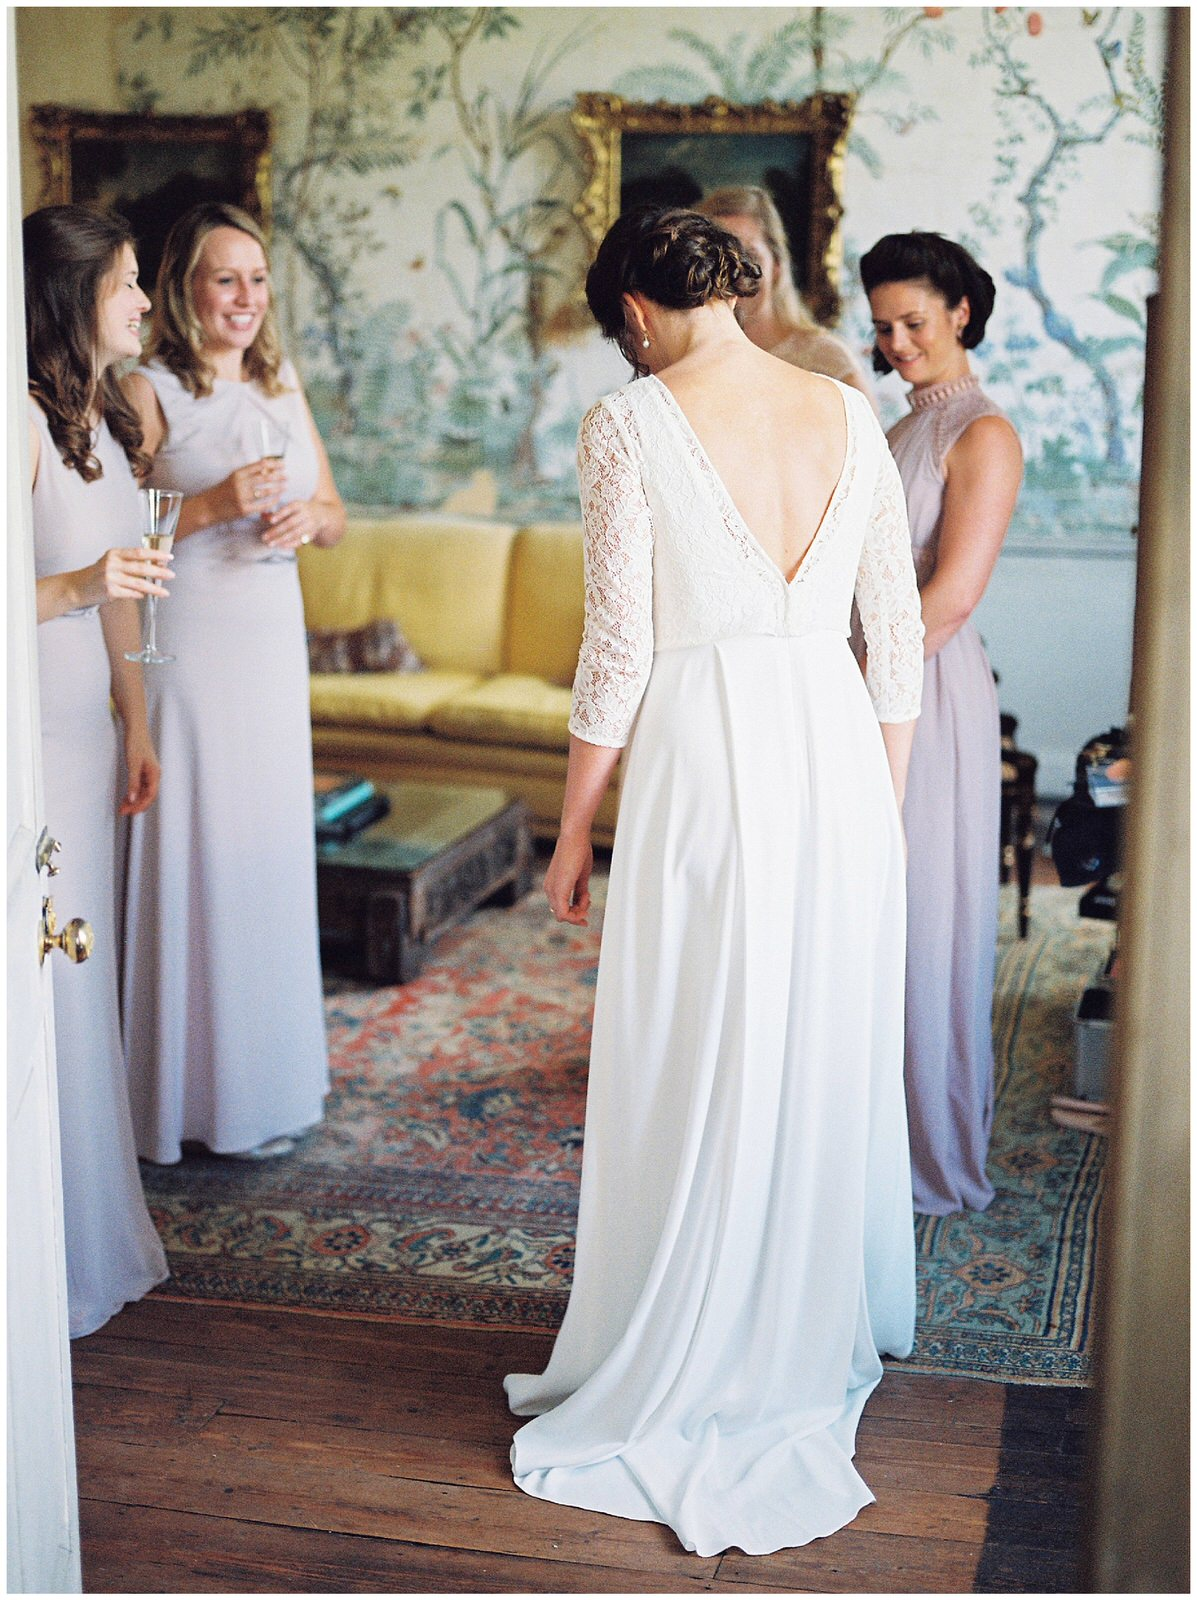 WEDDING DRESS REVEAL AT ST GILES HOUSE